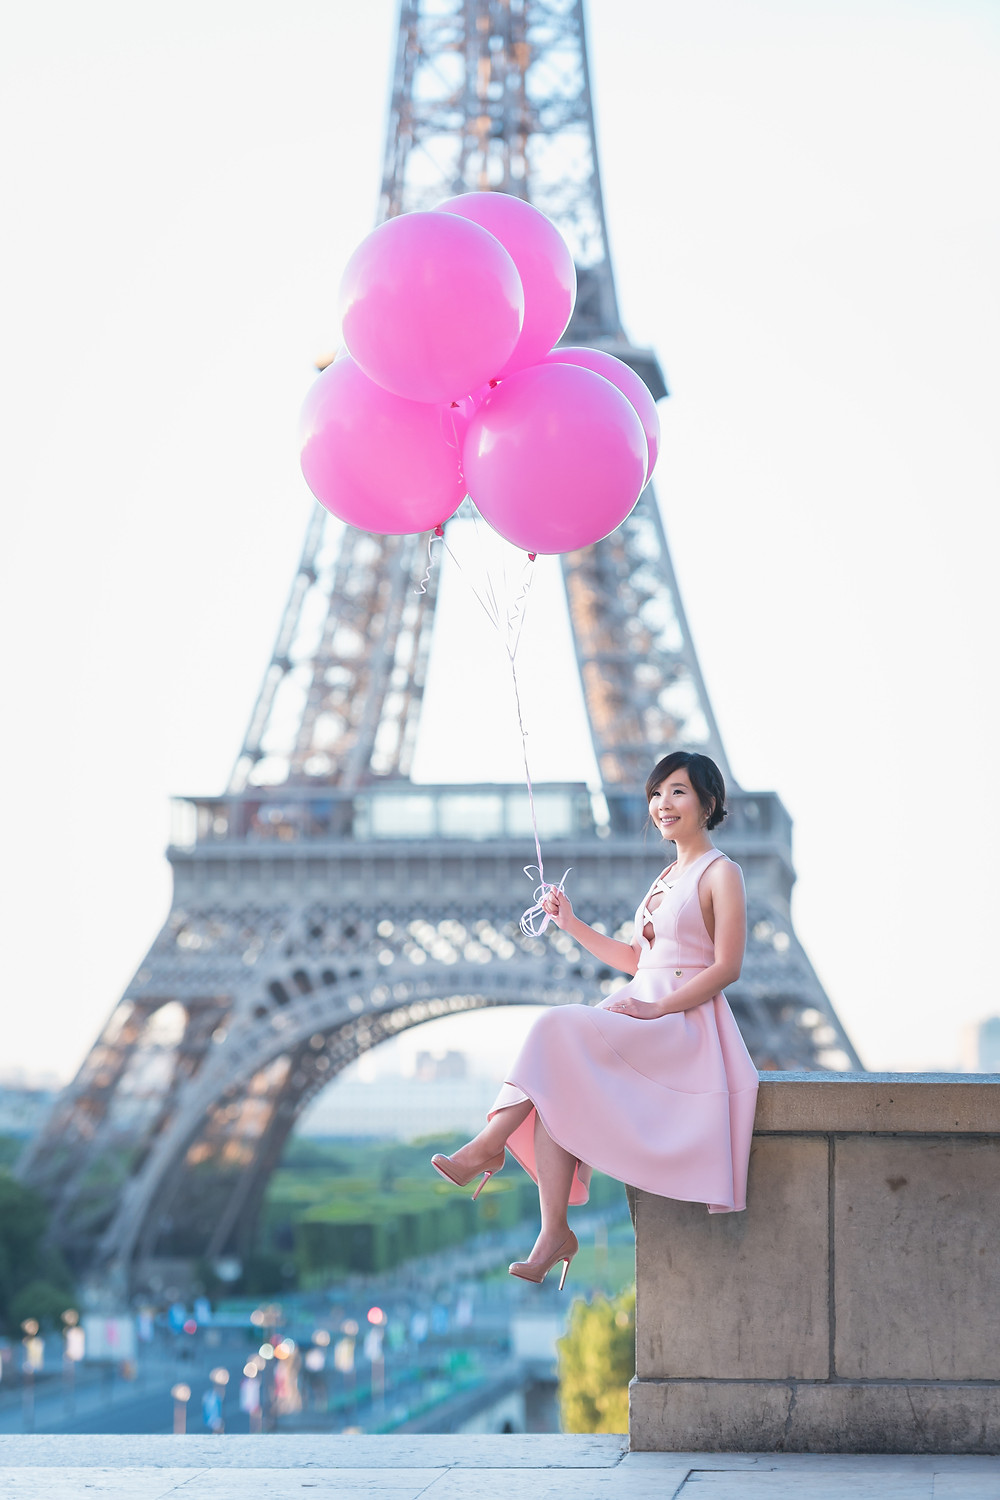 pink dress and balloons shoot in front of the Eiffel Tower!